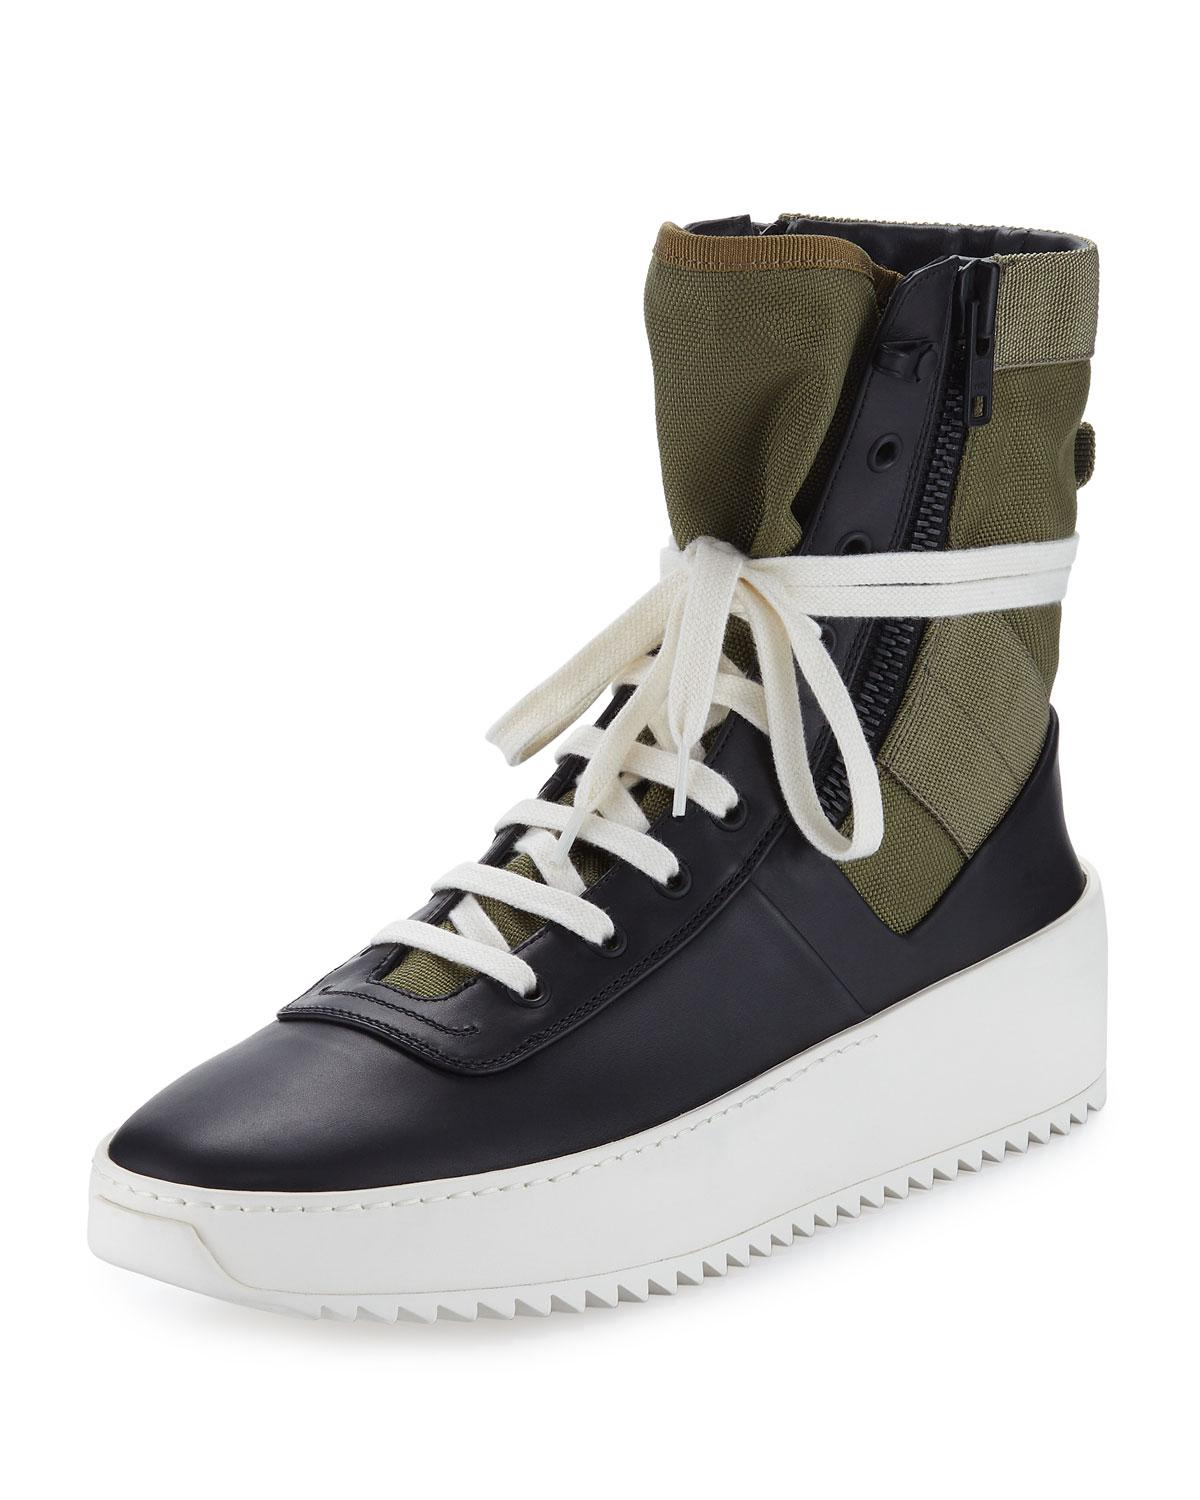 Fear of God Jungle Nubuck and Canvas High-Top Sneakers buy cheap official outlet free shipping deals online OIx7Nv0eQ